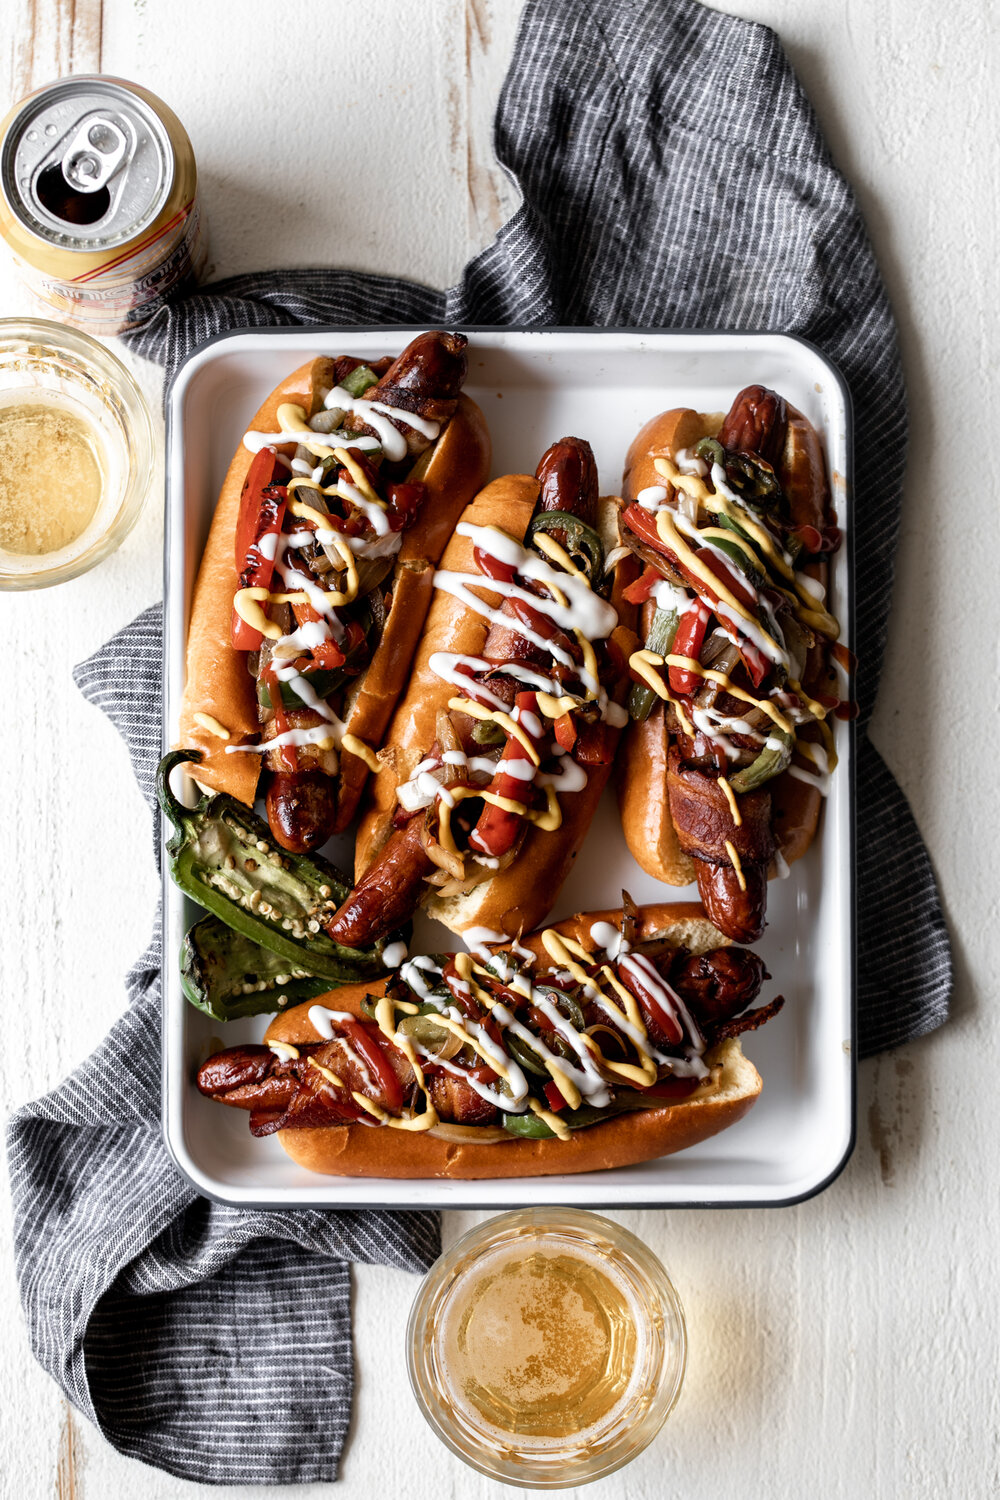 Bacon wrapped hot dogs topped with sautéed peppers, onions and jalapeño for an at home version of an LA street food favorite danger dogs